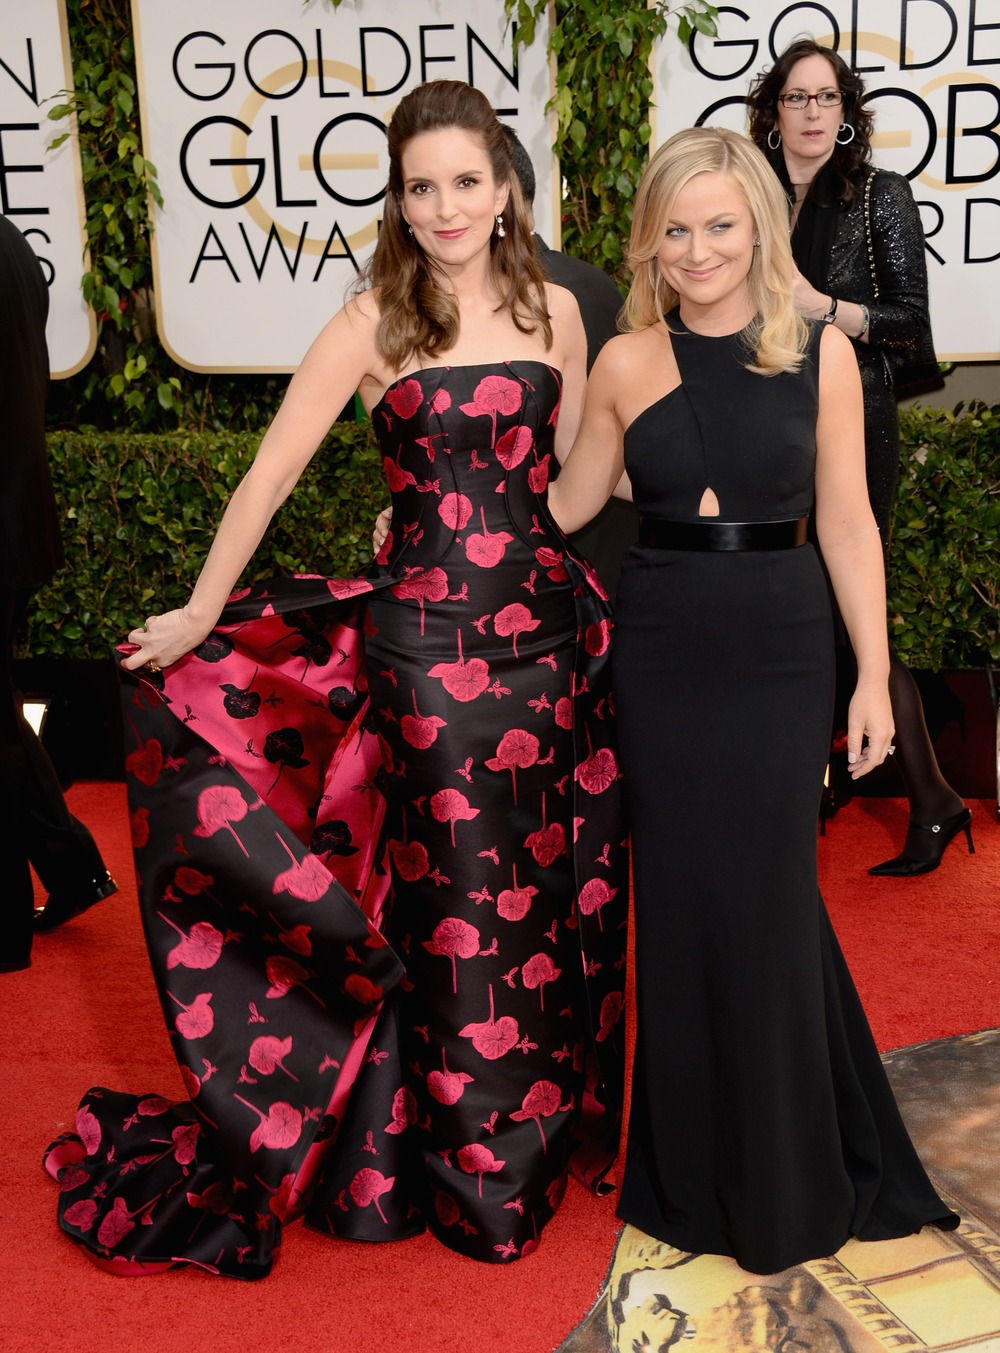 Golden Globes 2014: Tina Fey and Amy Poehler's Best Moments